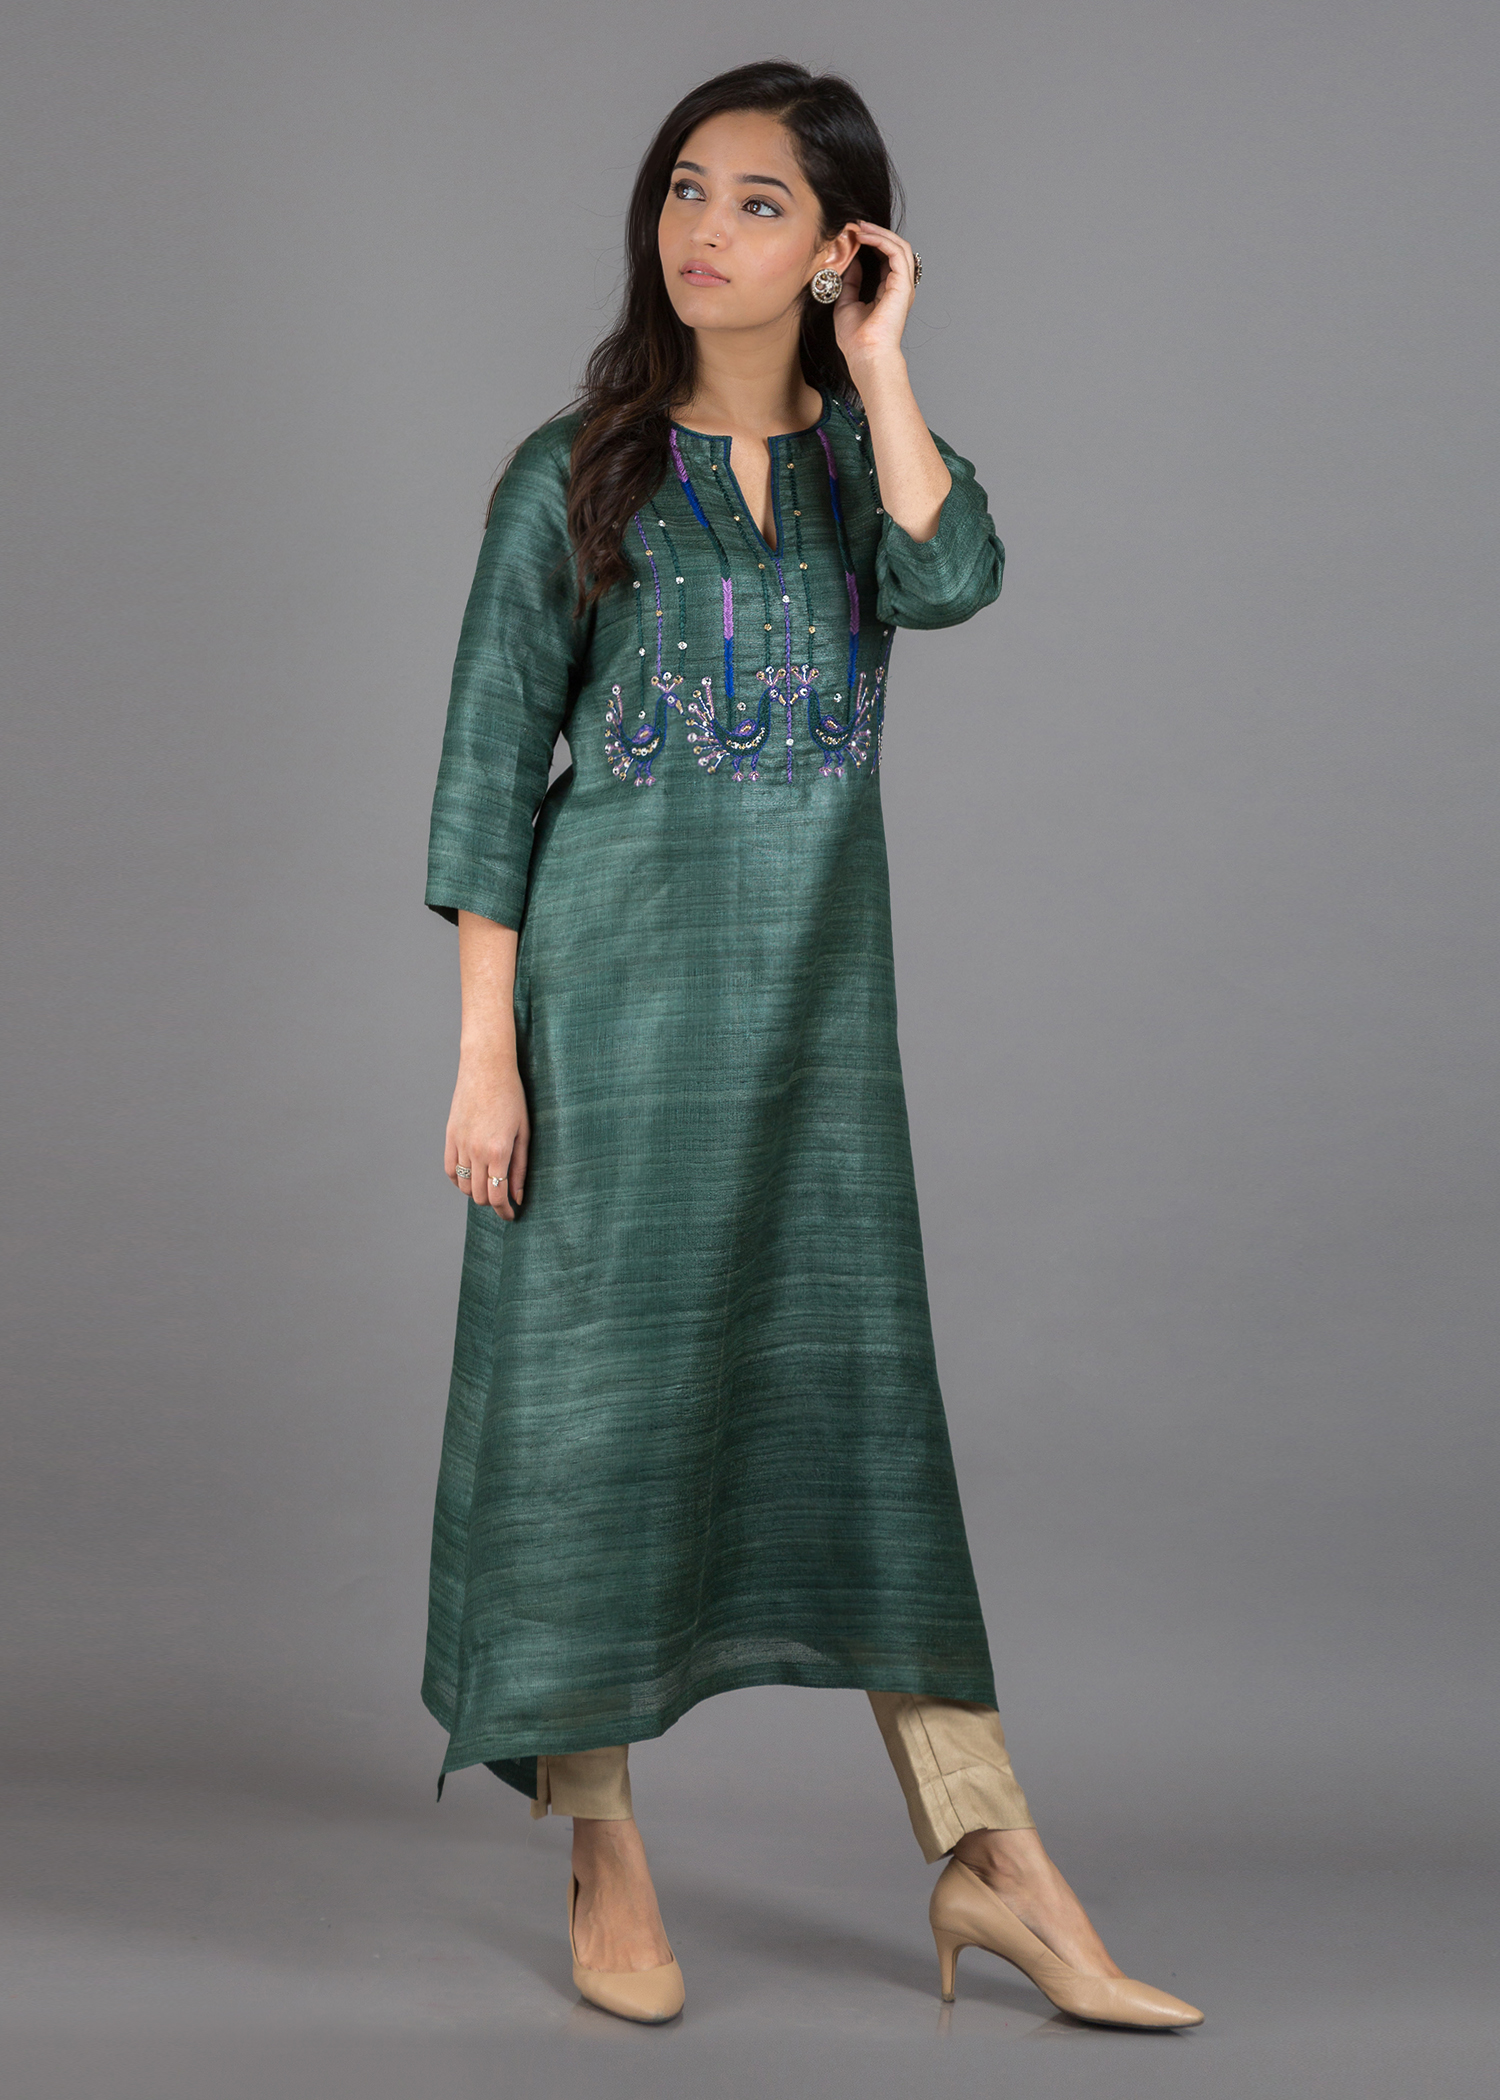 Bottle Green Bhagalpuri Handwoven Silk Kurta with Hand-Embroidered Peacocks